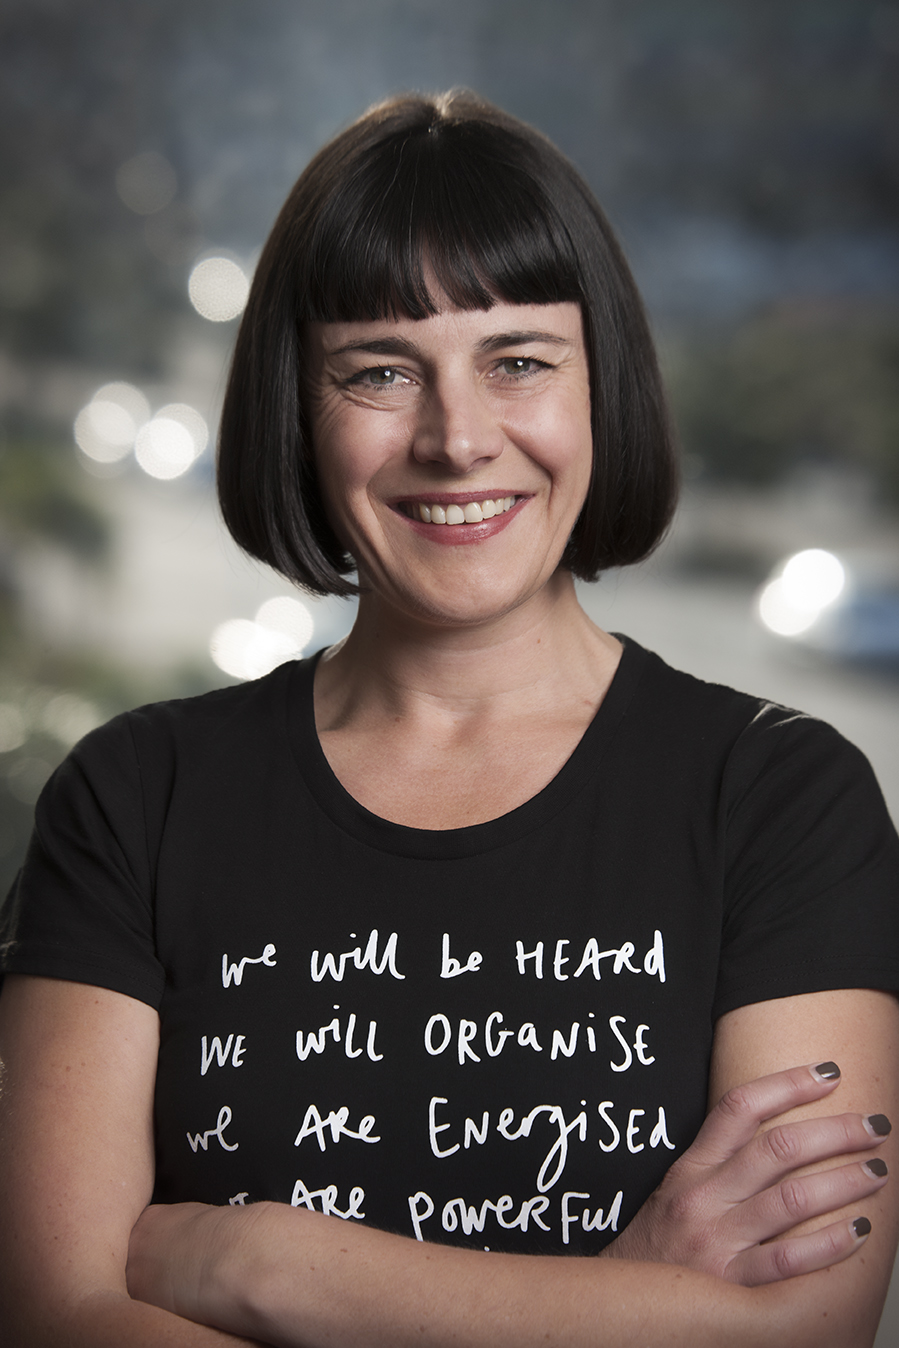 Marianne Elliott - Marianne is the co-director of ActionStation, and the lead author of the People's Mental Health Report.